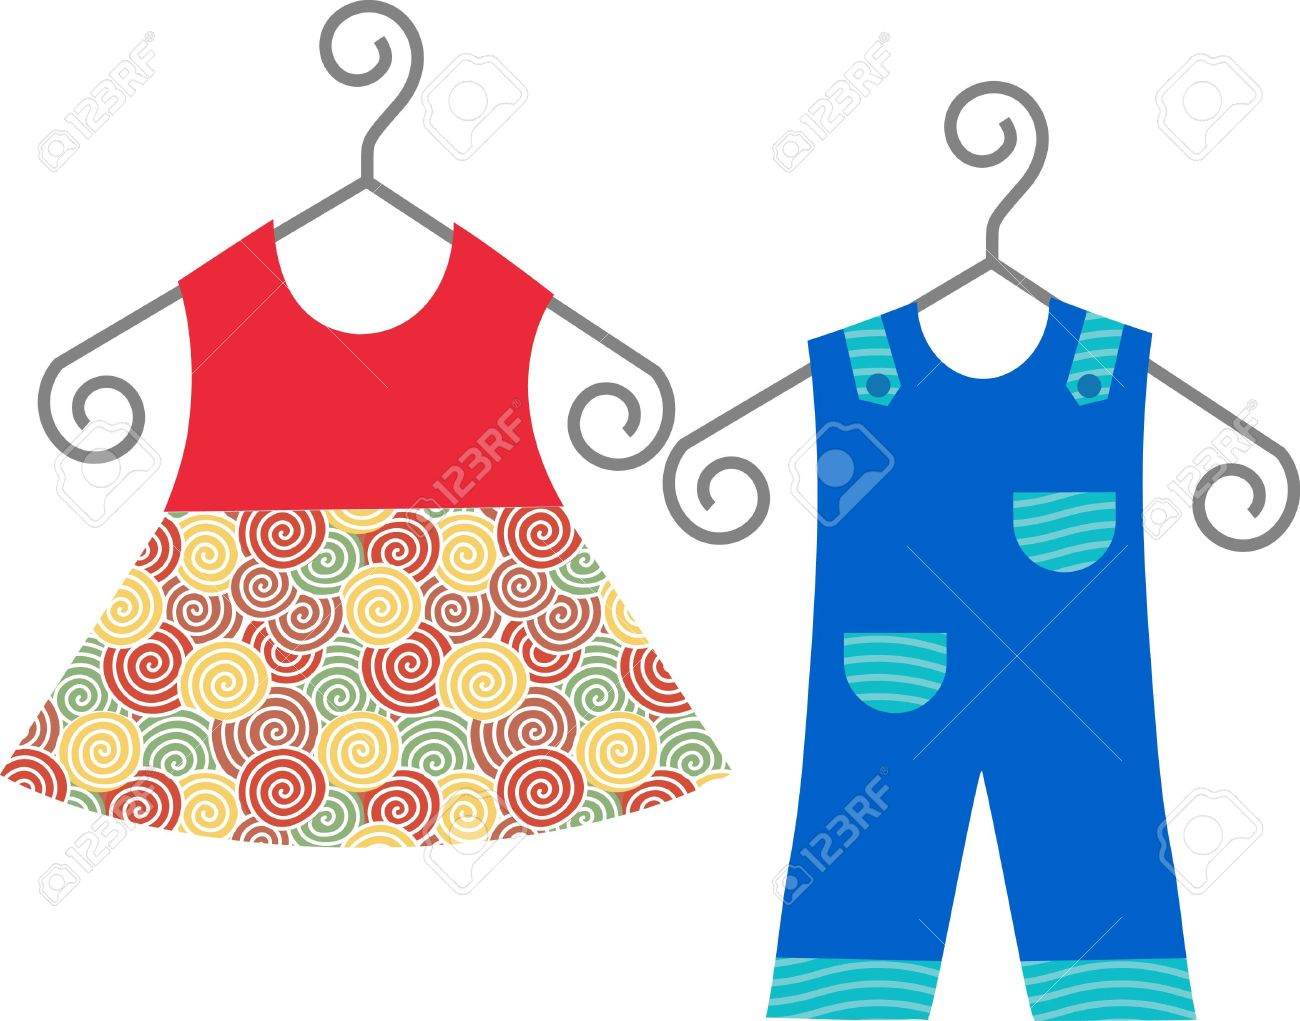 baby clothes hanging on clothes hanger dress and suit royalty free rh 123rf com Toys Clip Art Food Clip Art